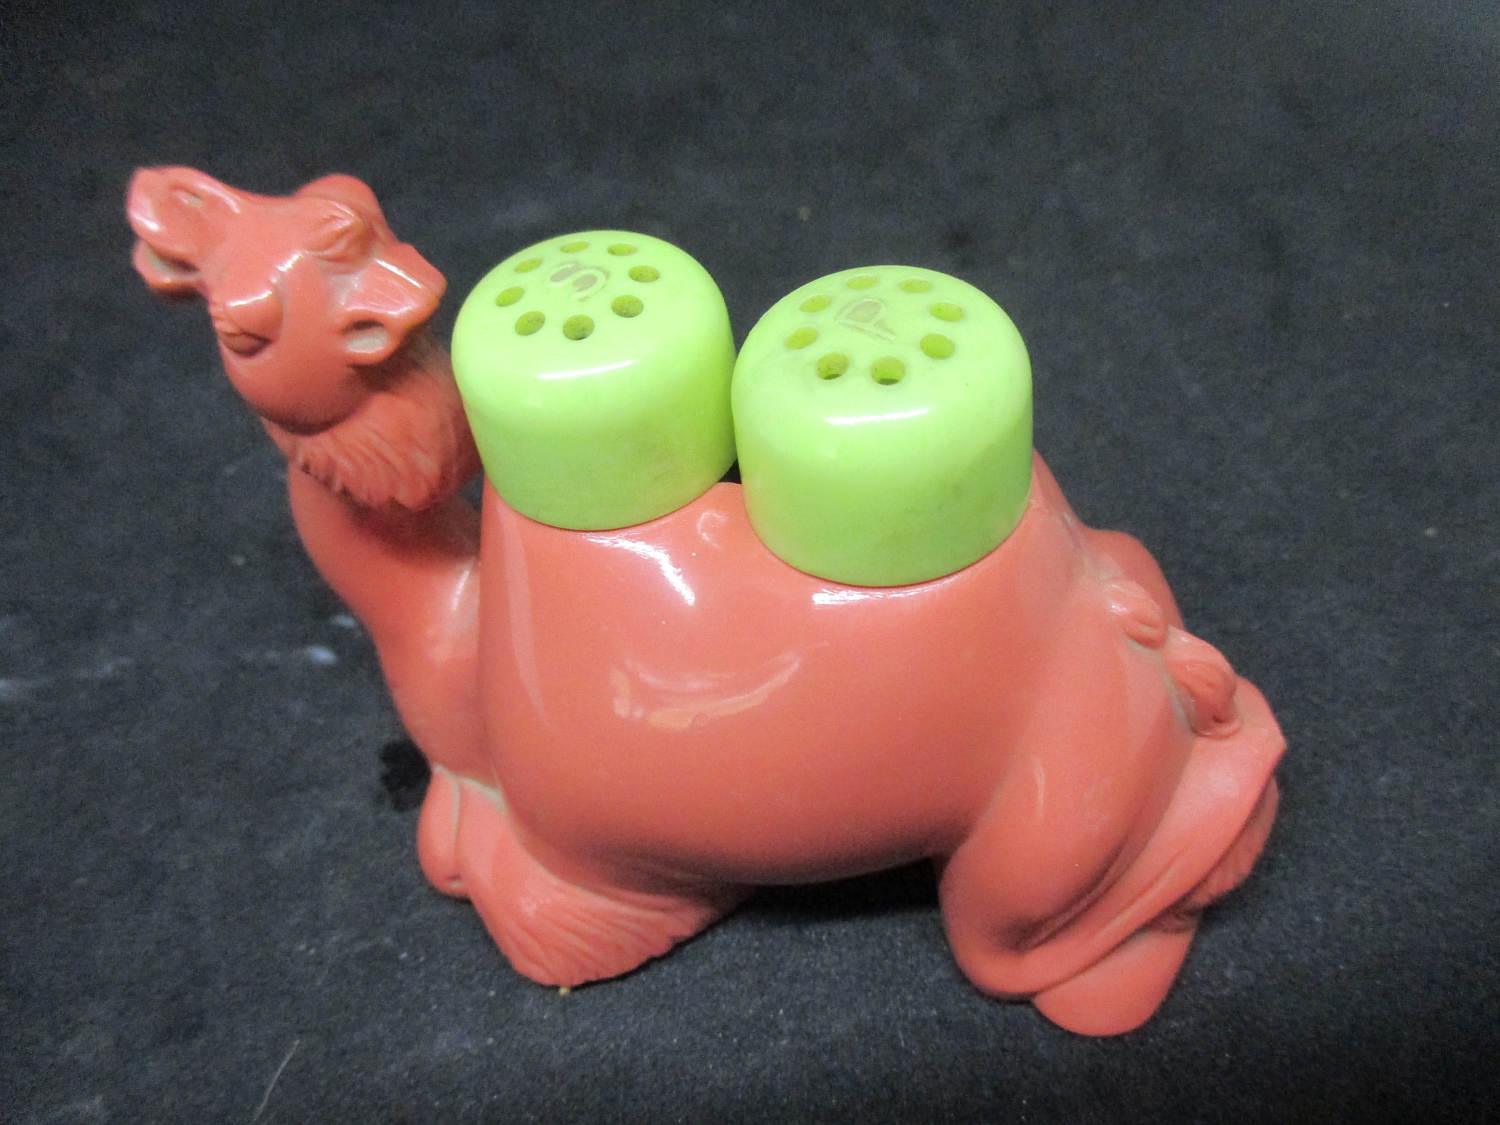 Camel Removable Humps hard Plastic Salt & Pepper Shakers decor collectible display tableware dinning kitchen cottage 1950's